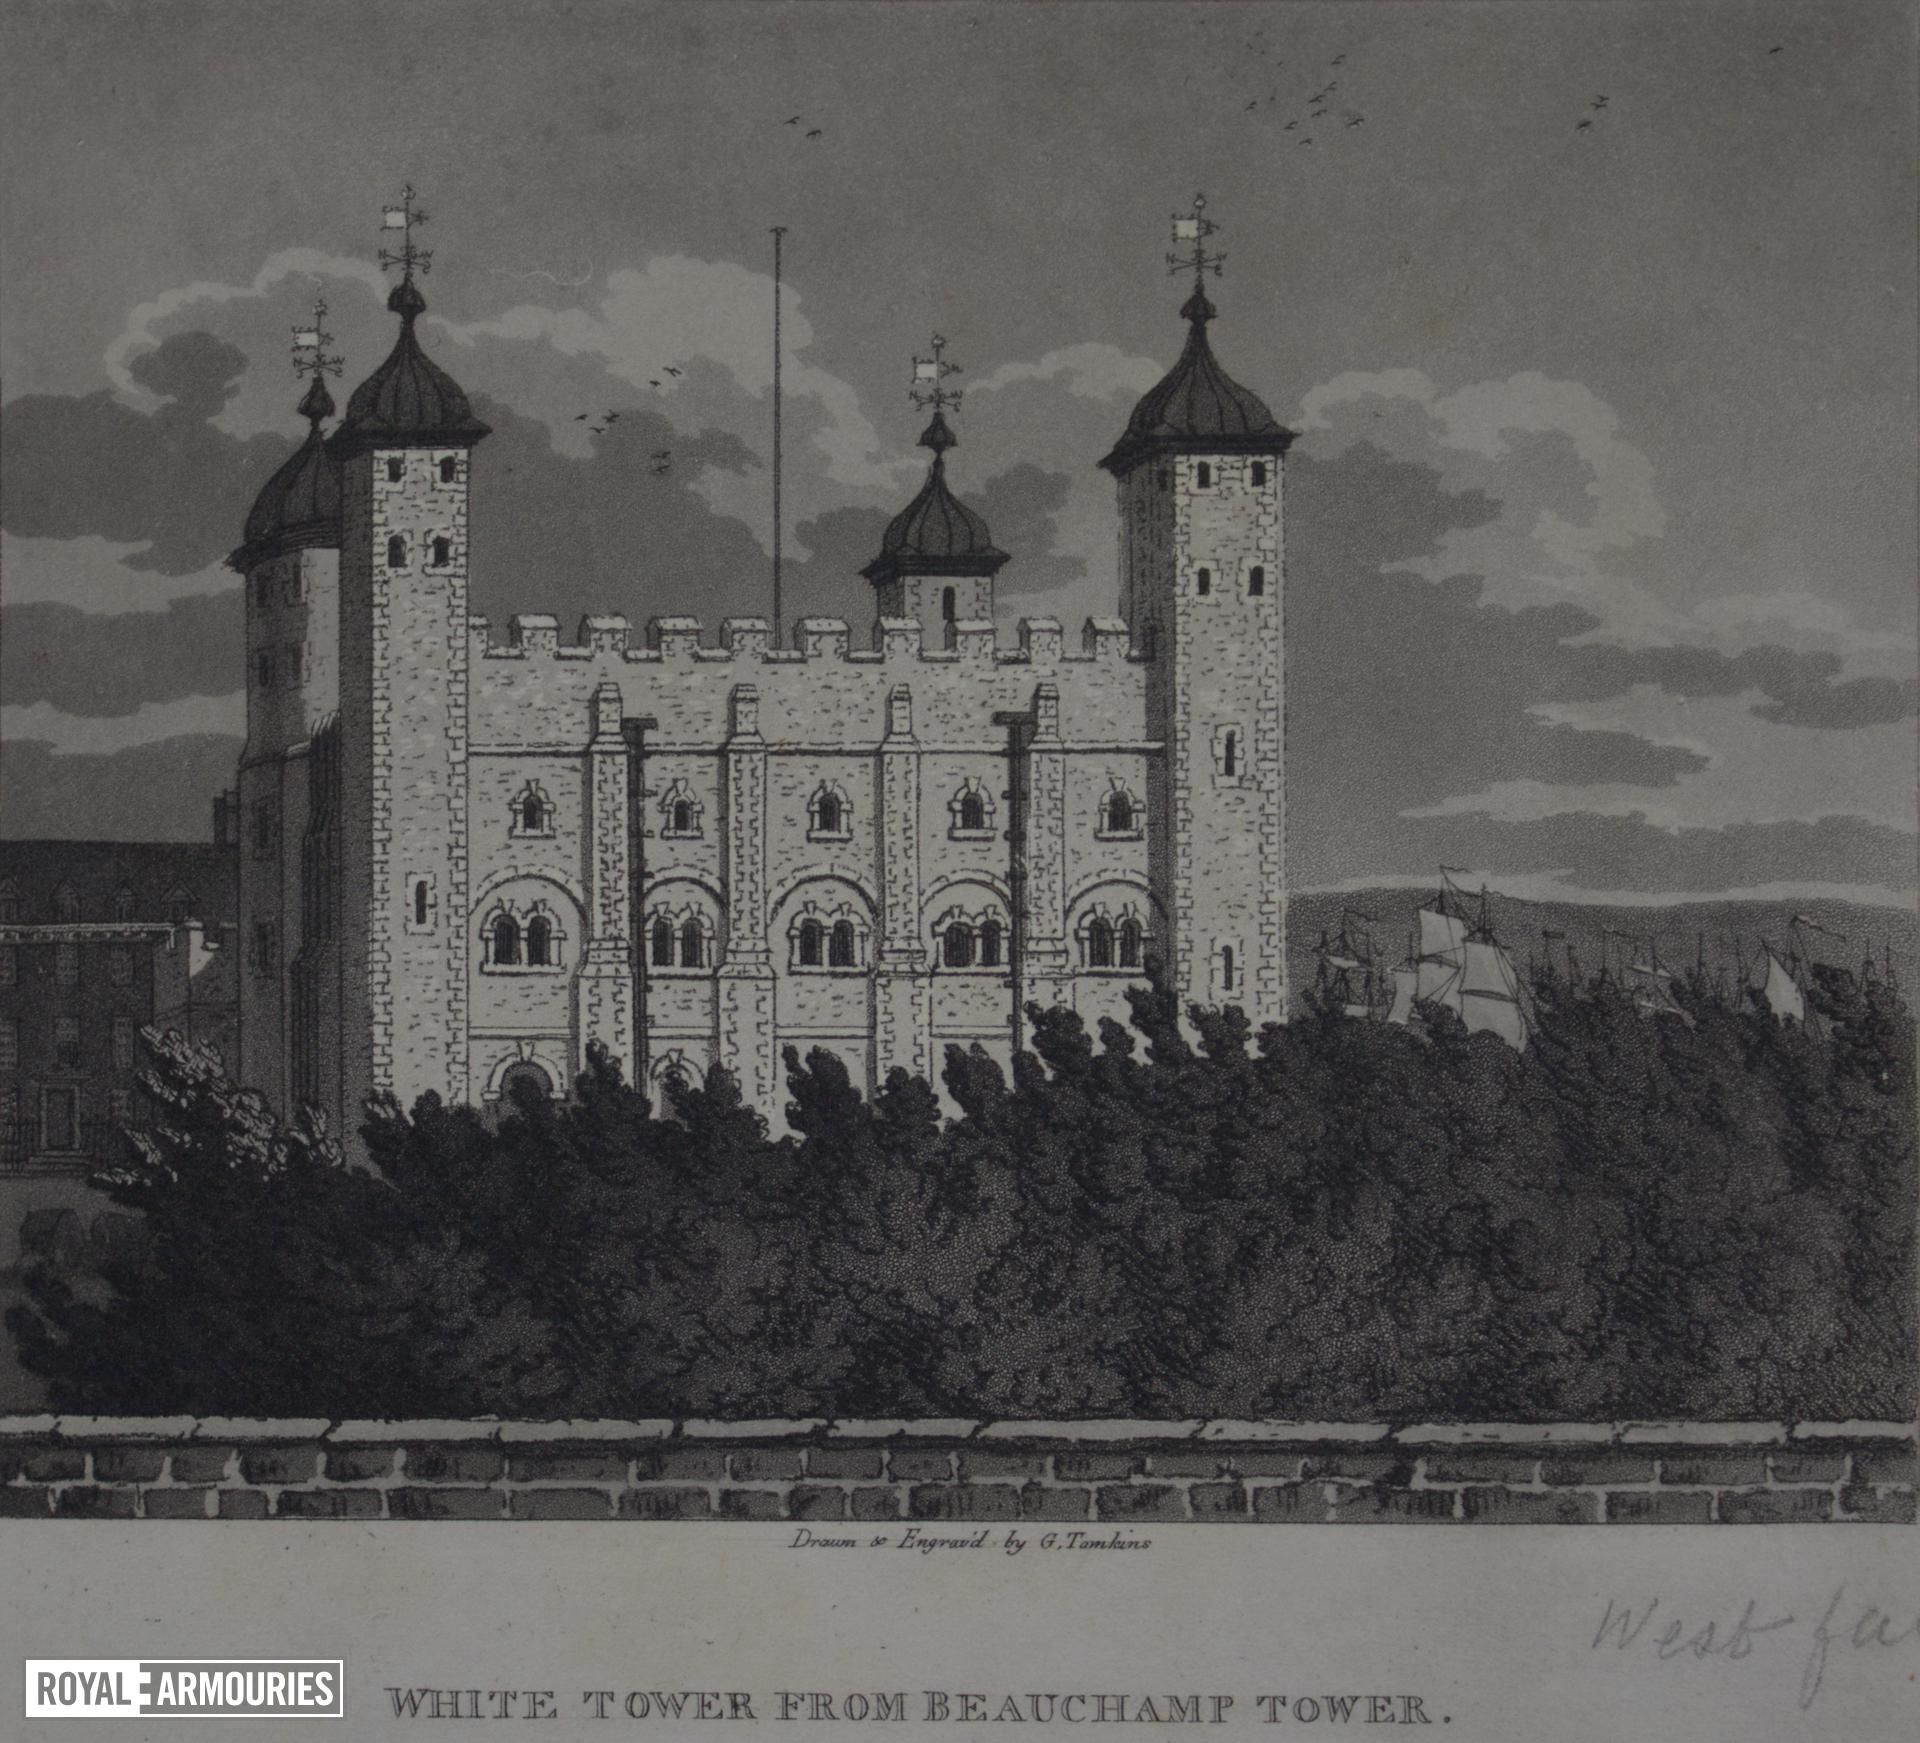 Print 'White Tower from Beauchamp Tower', Tower of London, dated 1806.